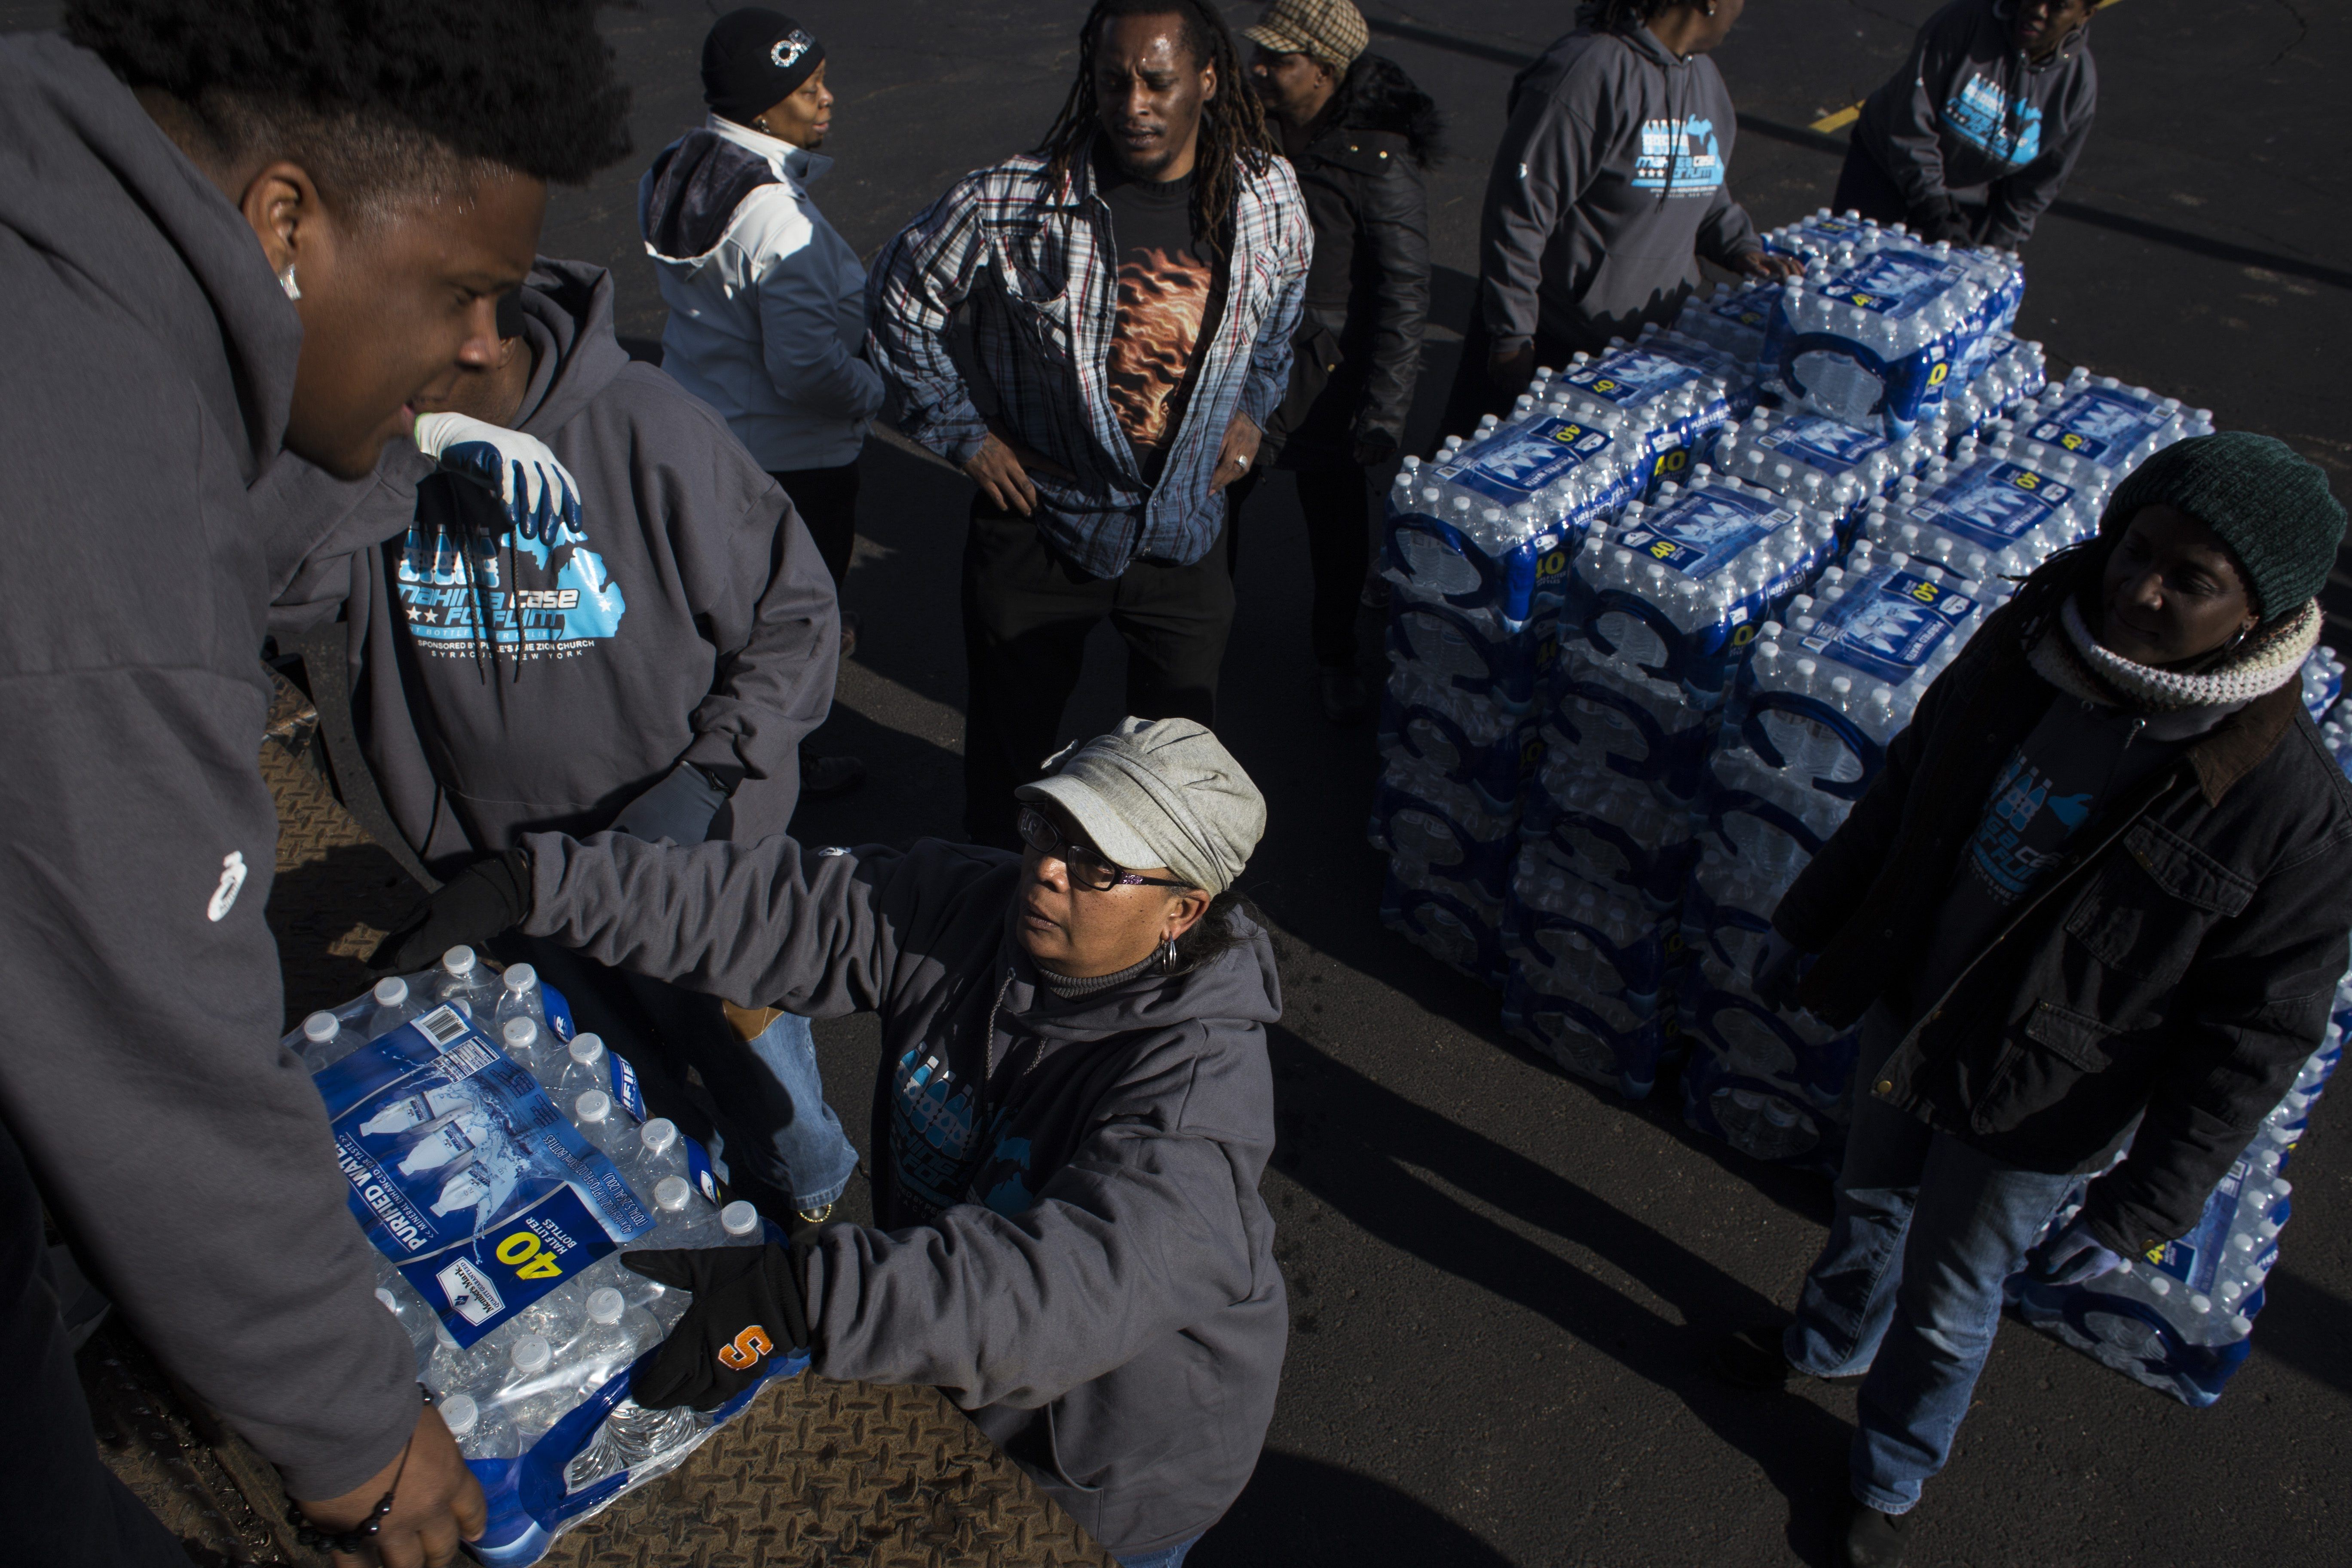 Volunteers stack cases of bottled water to hand out to a line of cars during a water drive put on in the North side of Flint, Mich., one of the areas most affected by the city's ongoing water crisis, on Feb. 6, 2016. Volunteers visited the city from both Syracuse and Buffalo to help address issues with access to fresh water. (Photo by Brittany Greeson for The Buffalo News)